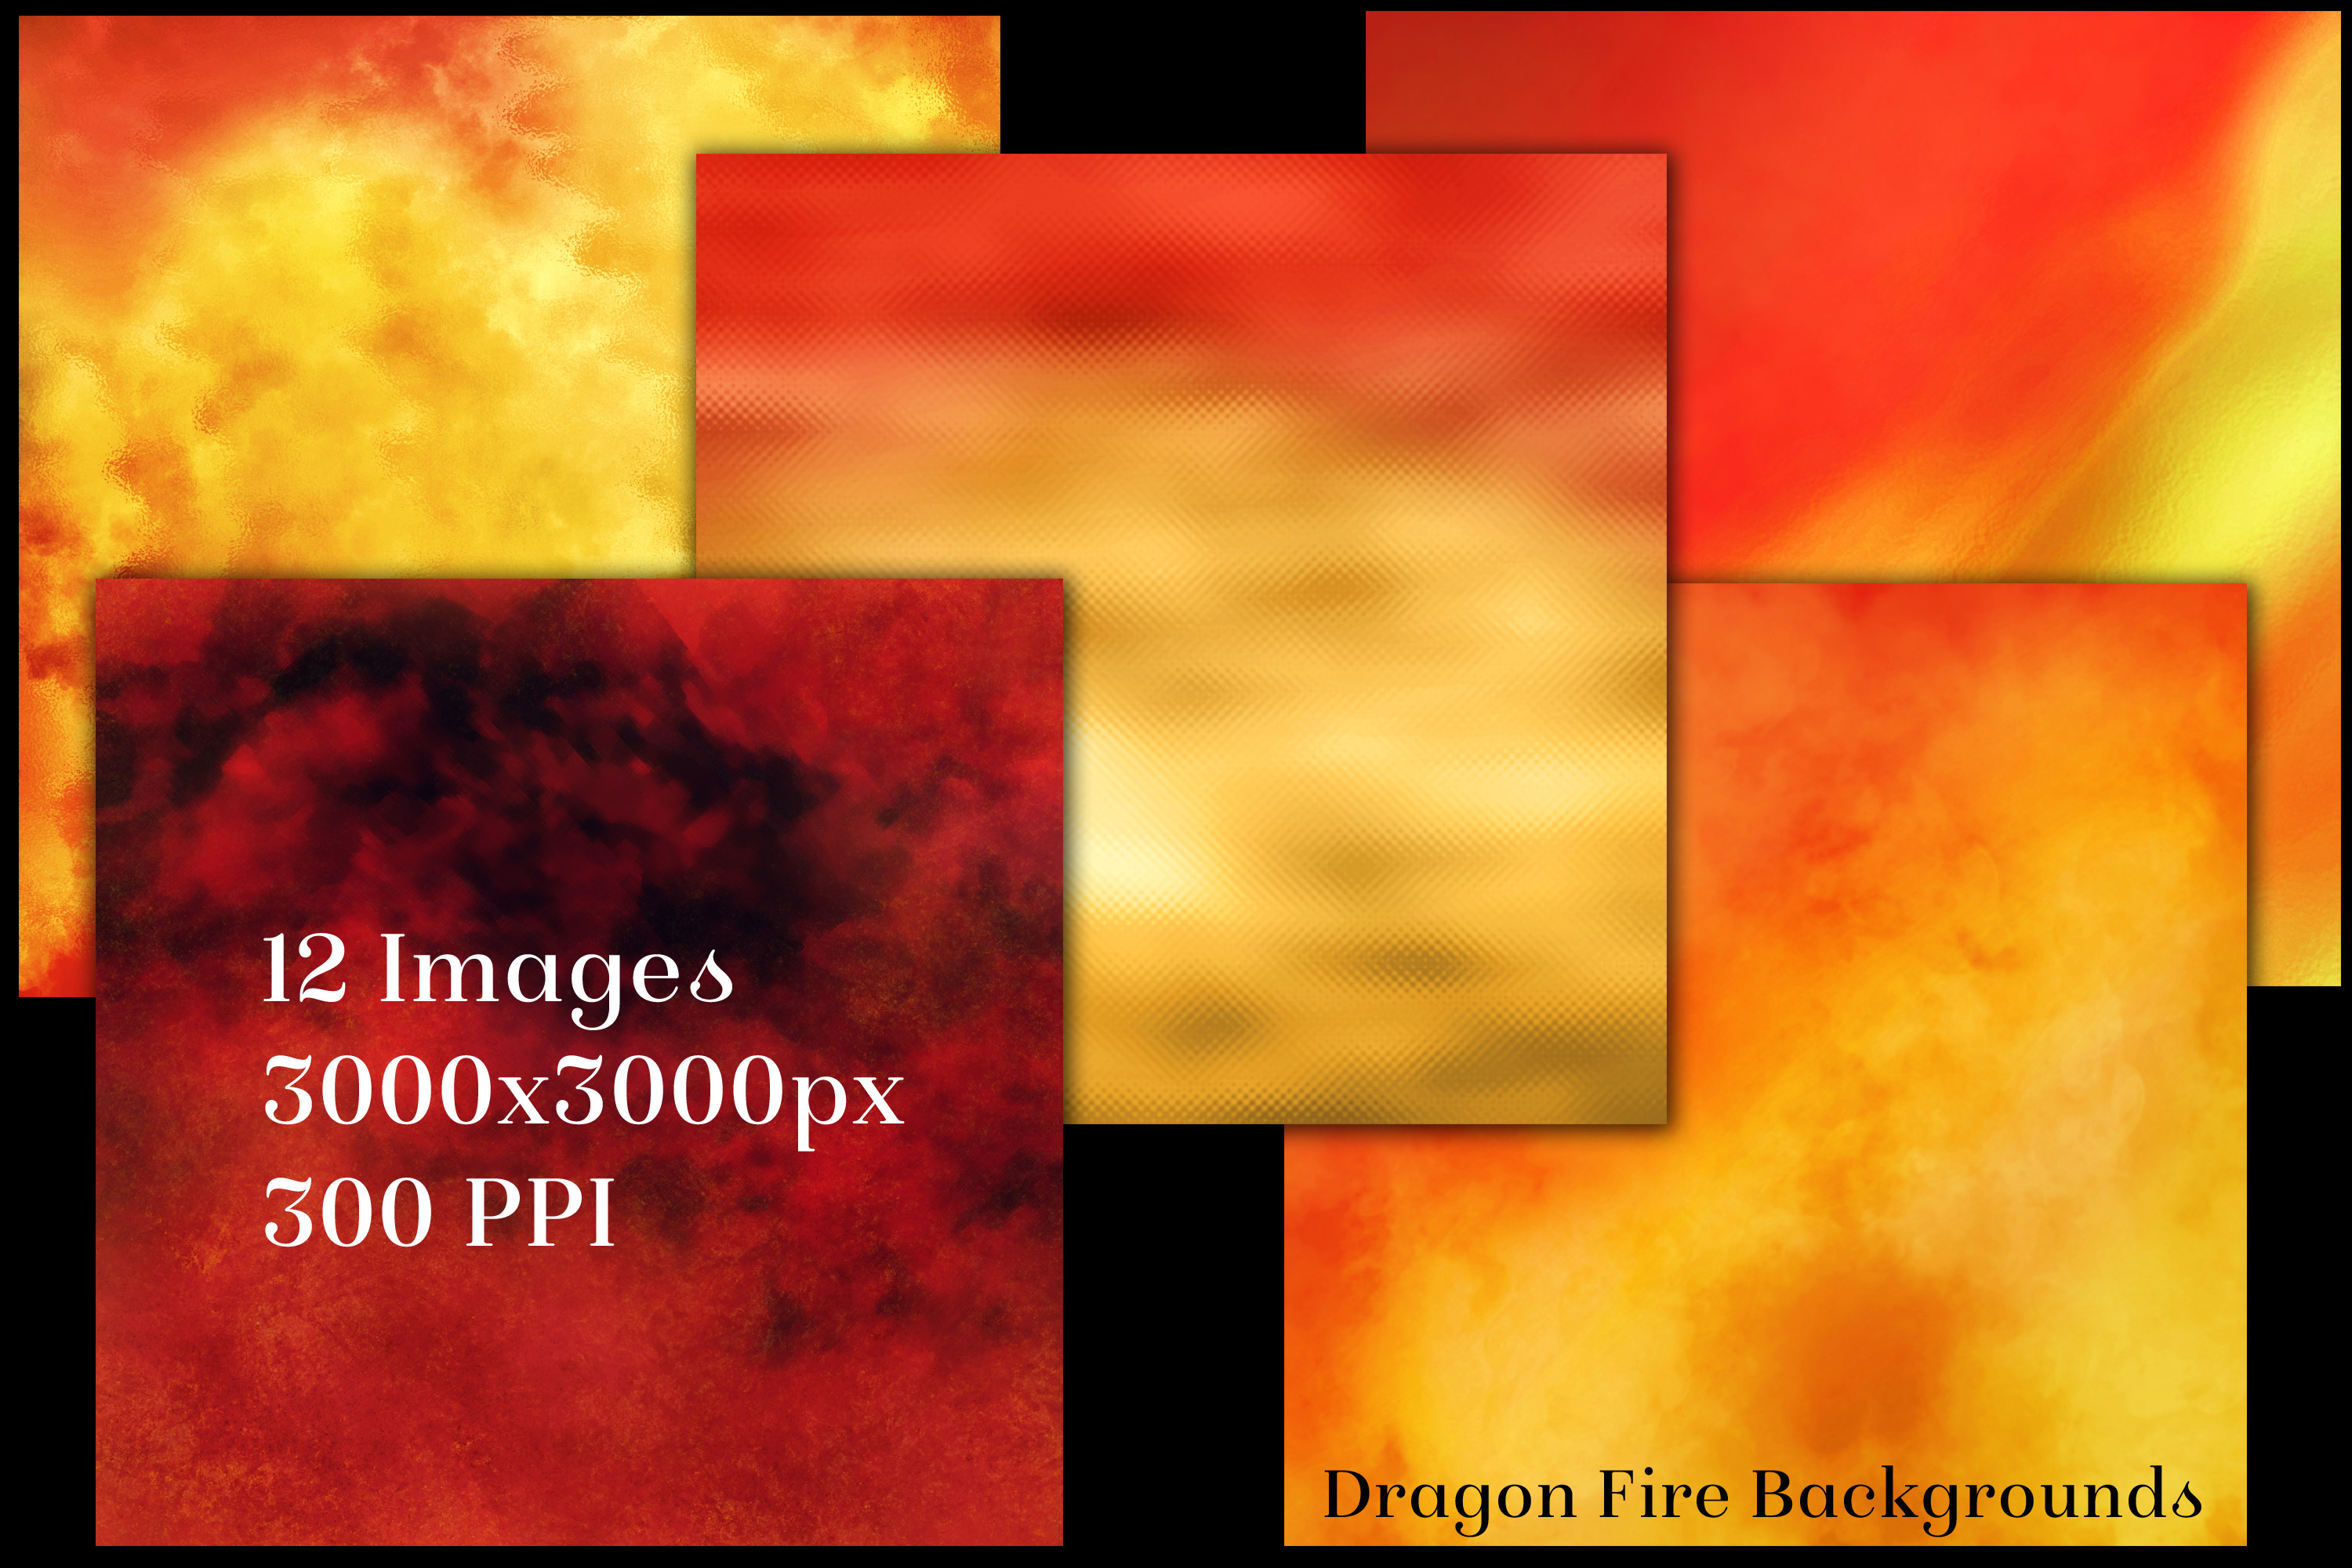 Dragon Fire Backgrounds - 12 Image Textures Set example image 2